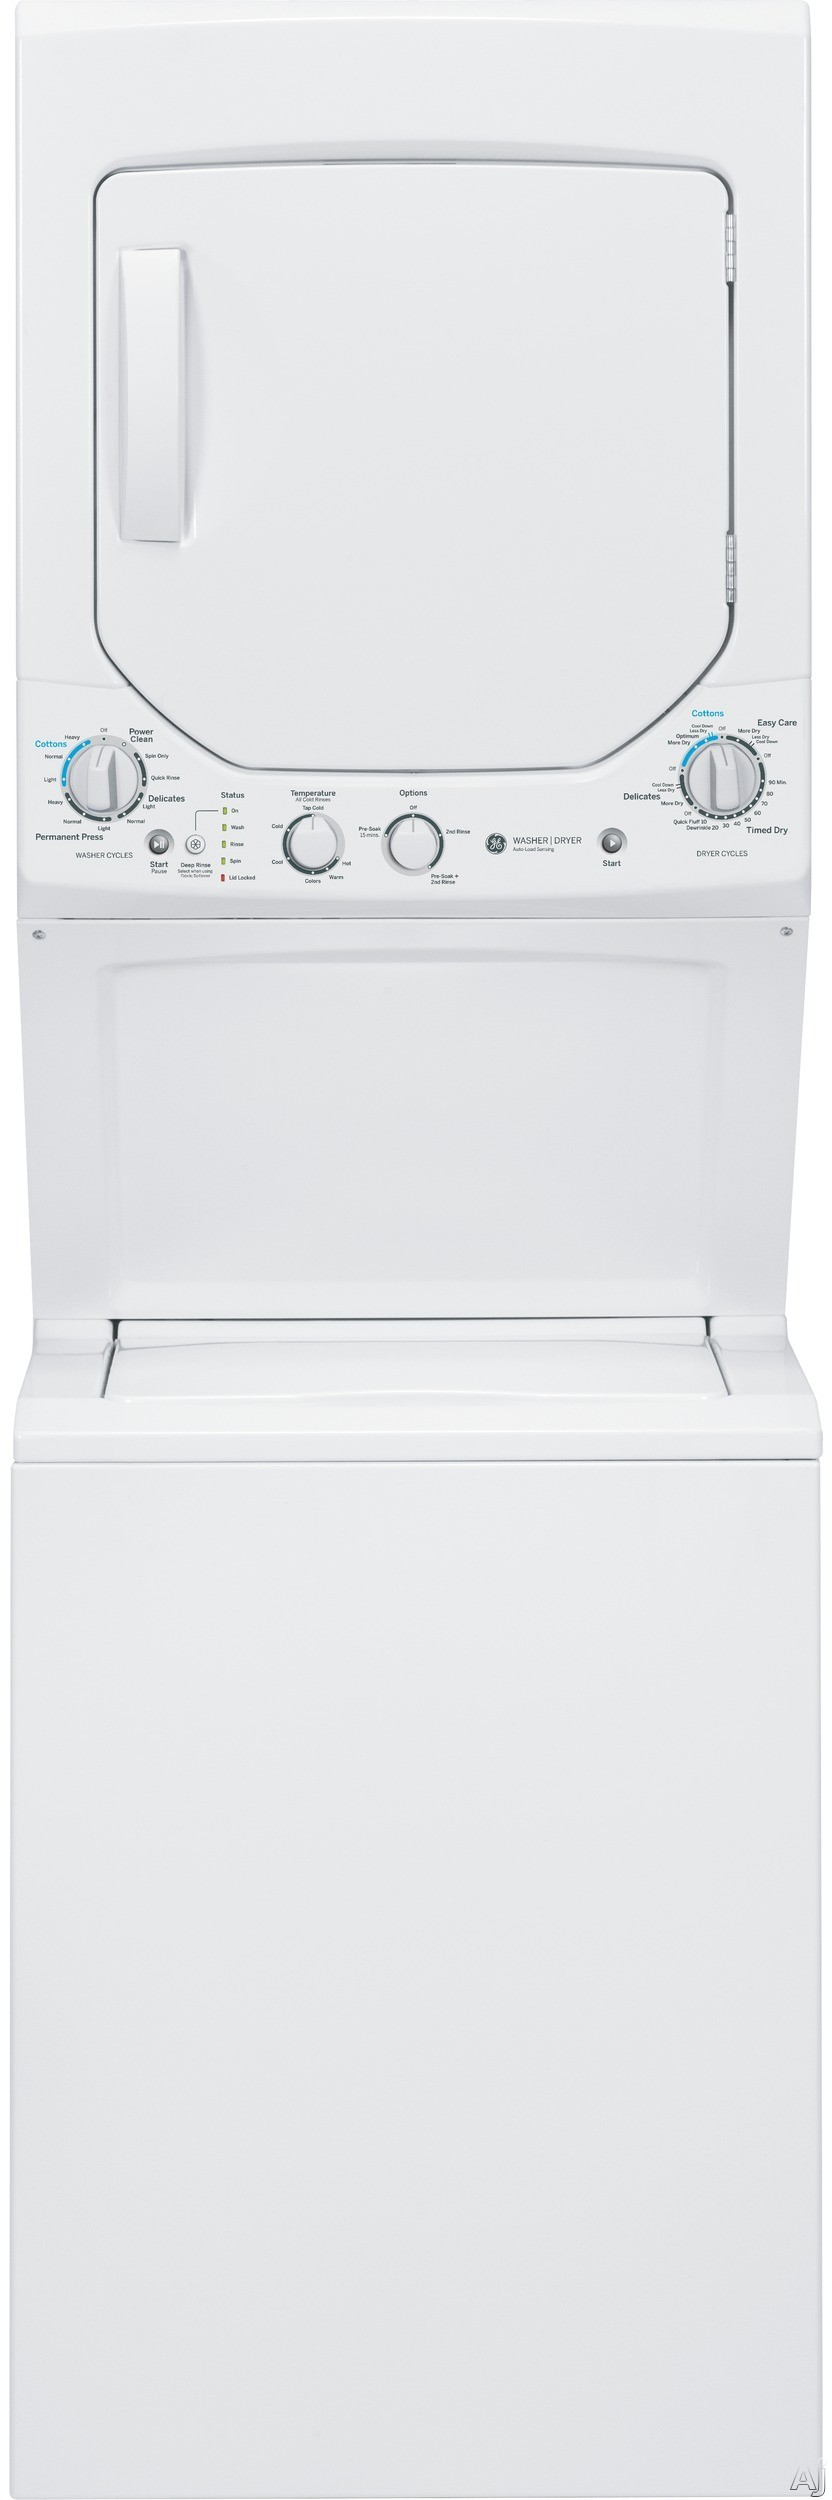 "Picture of 24"" Electric Laundry Center with 2.0 Cu. Ft. Washer and 4.4 Cu. Ft. DryerJust under 24 inches wide and 75 inches high, this electric laundry center by GE saves a lot on space, but definitely not on performance. Perfect for a closet or a bathroom alcove, this washer and dryer tower is easy to use with rotary mechanical knobs.The washer features 12 different cycles to handle all types of wash loads"